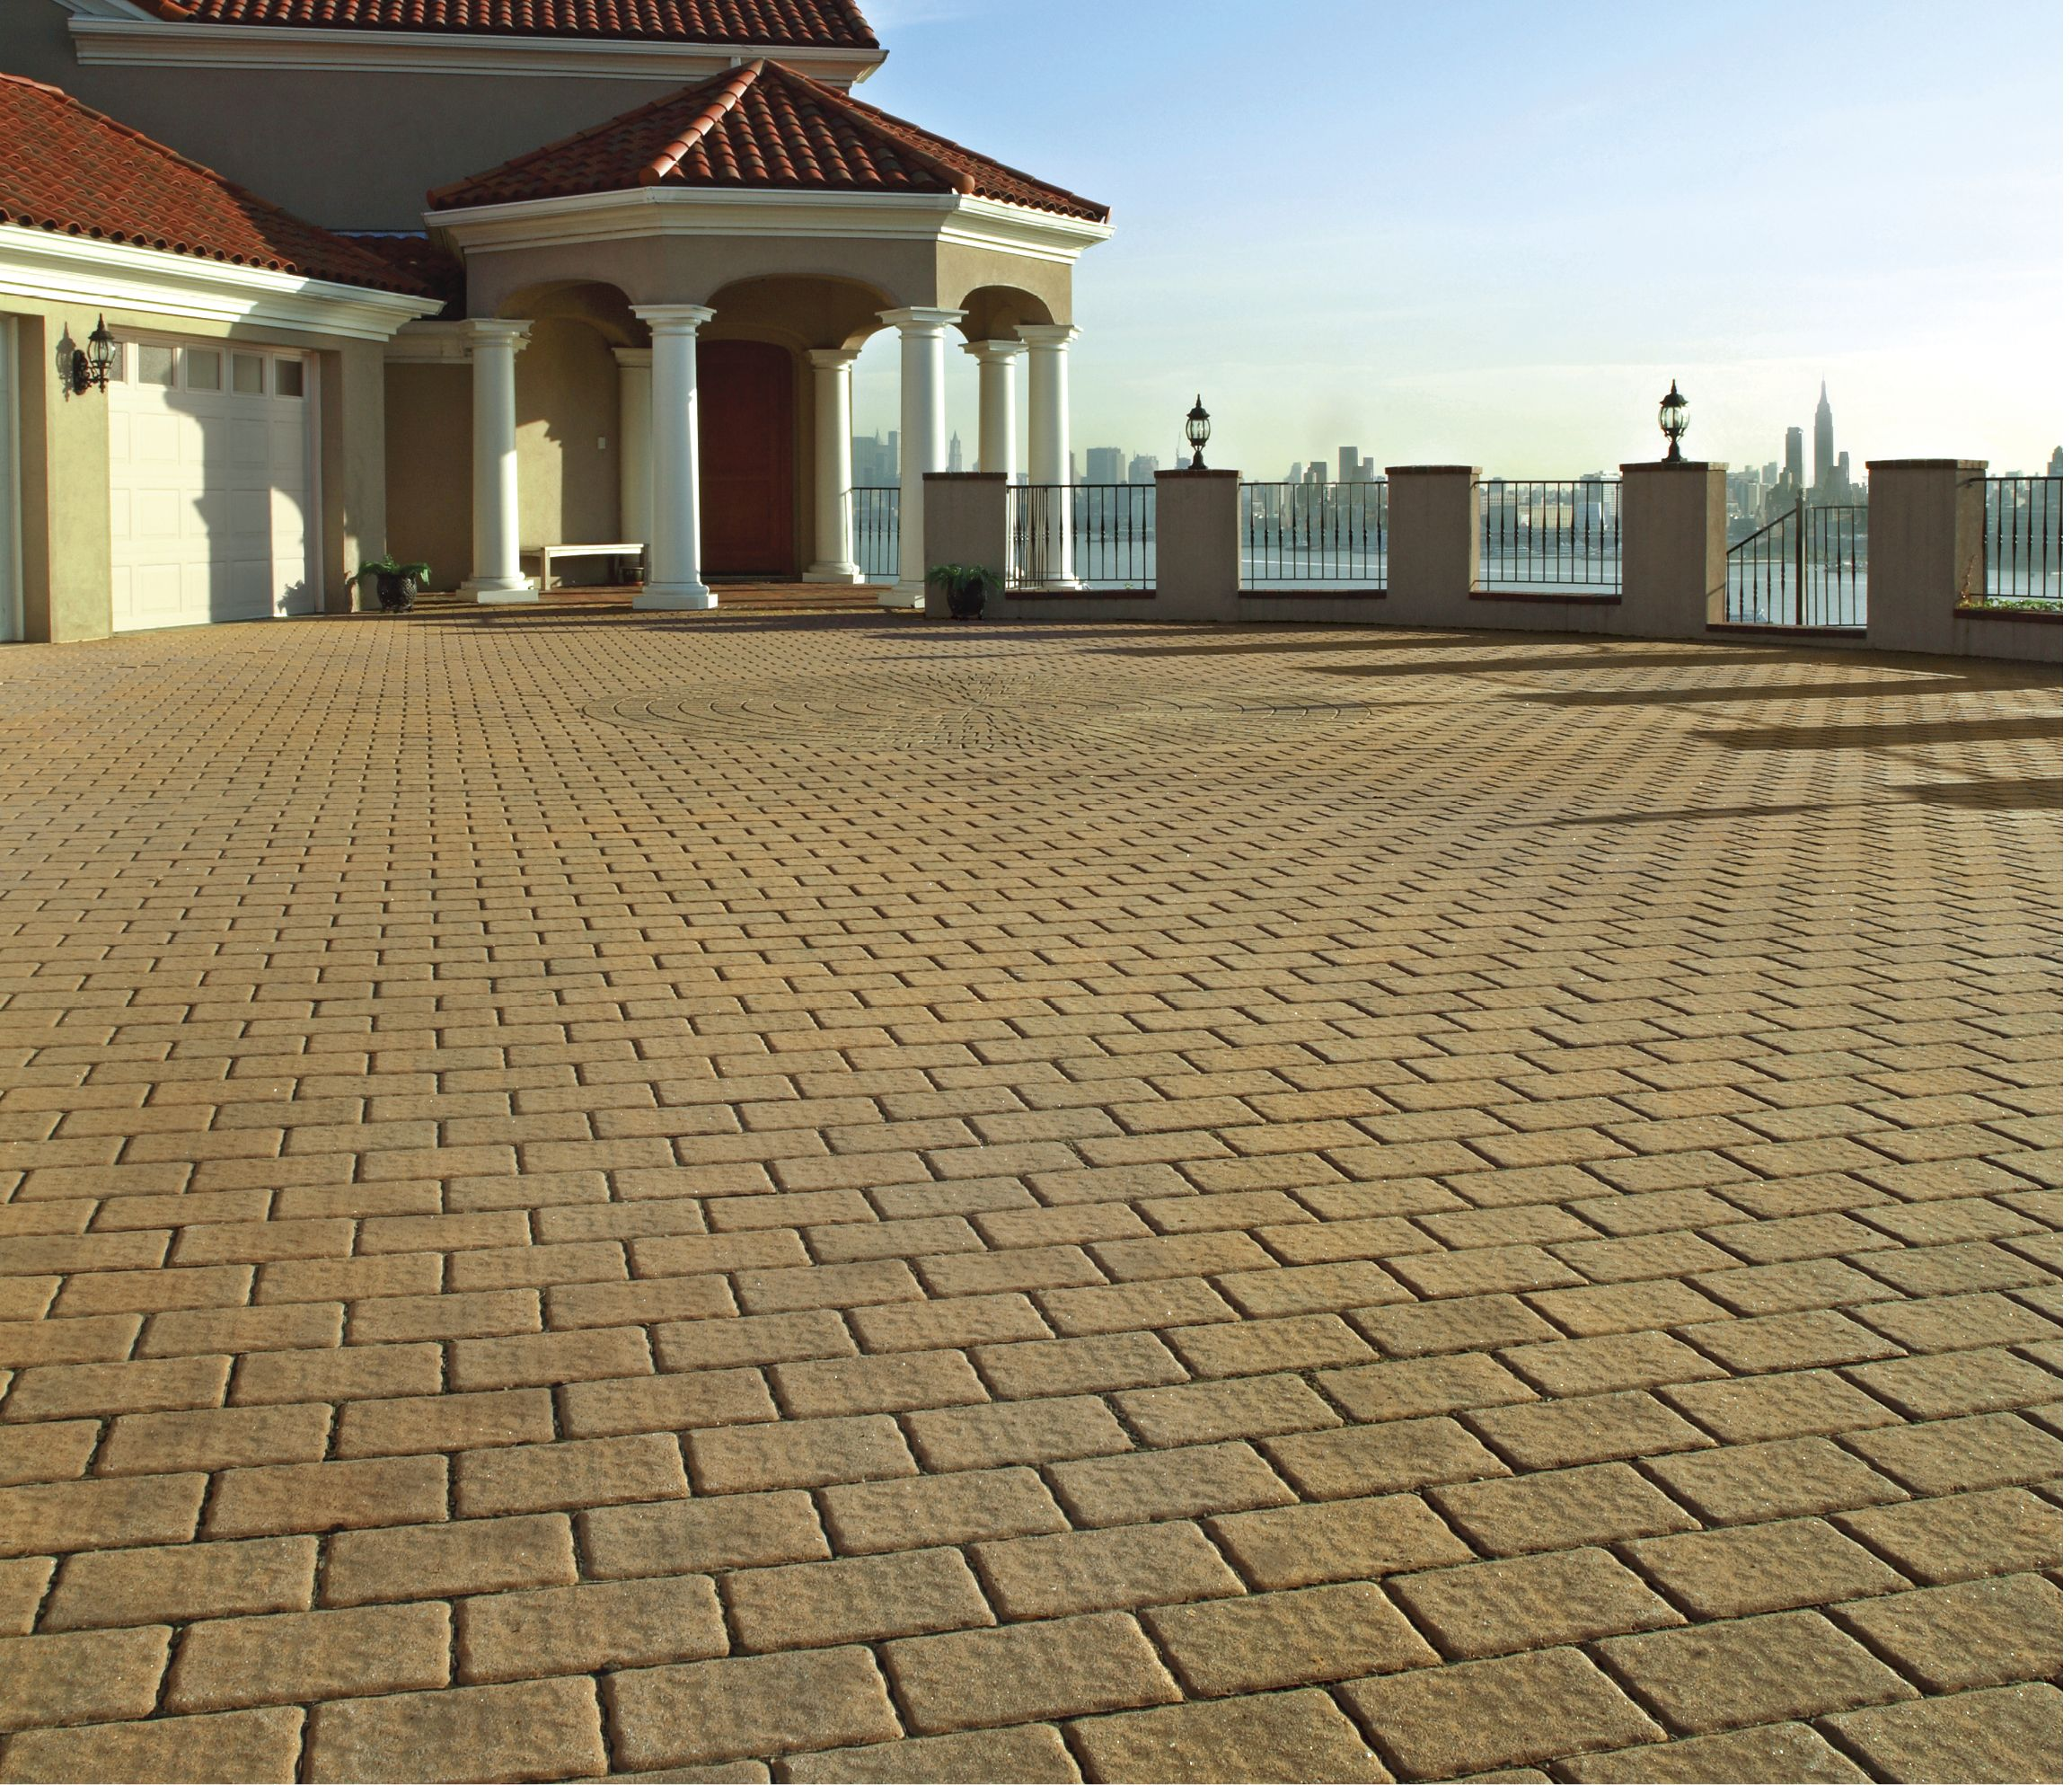 Cambridge pavingstones wall systems color options - Walls The Roundtable Collection 6x9 With A Circle Design Kit Cambridge Pavingstones With Armortec Provide Pavers